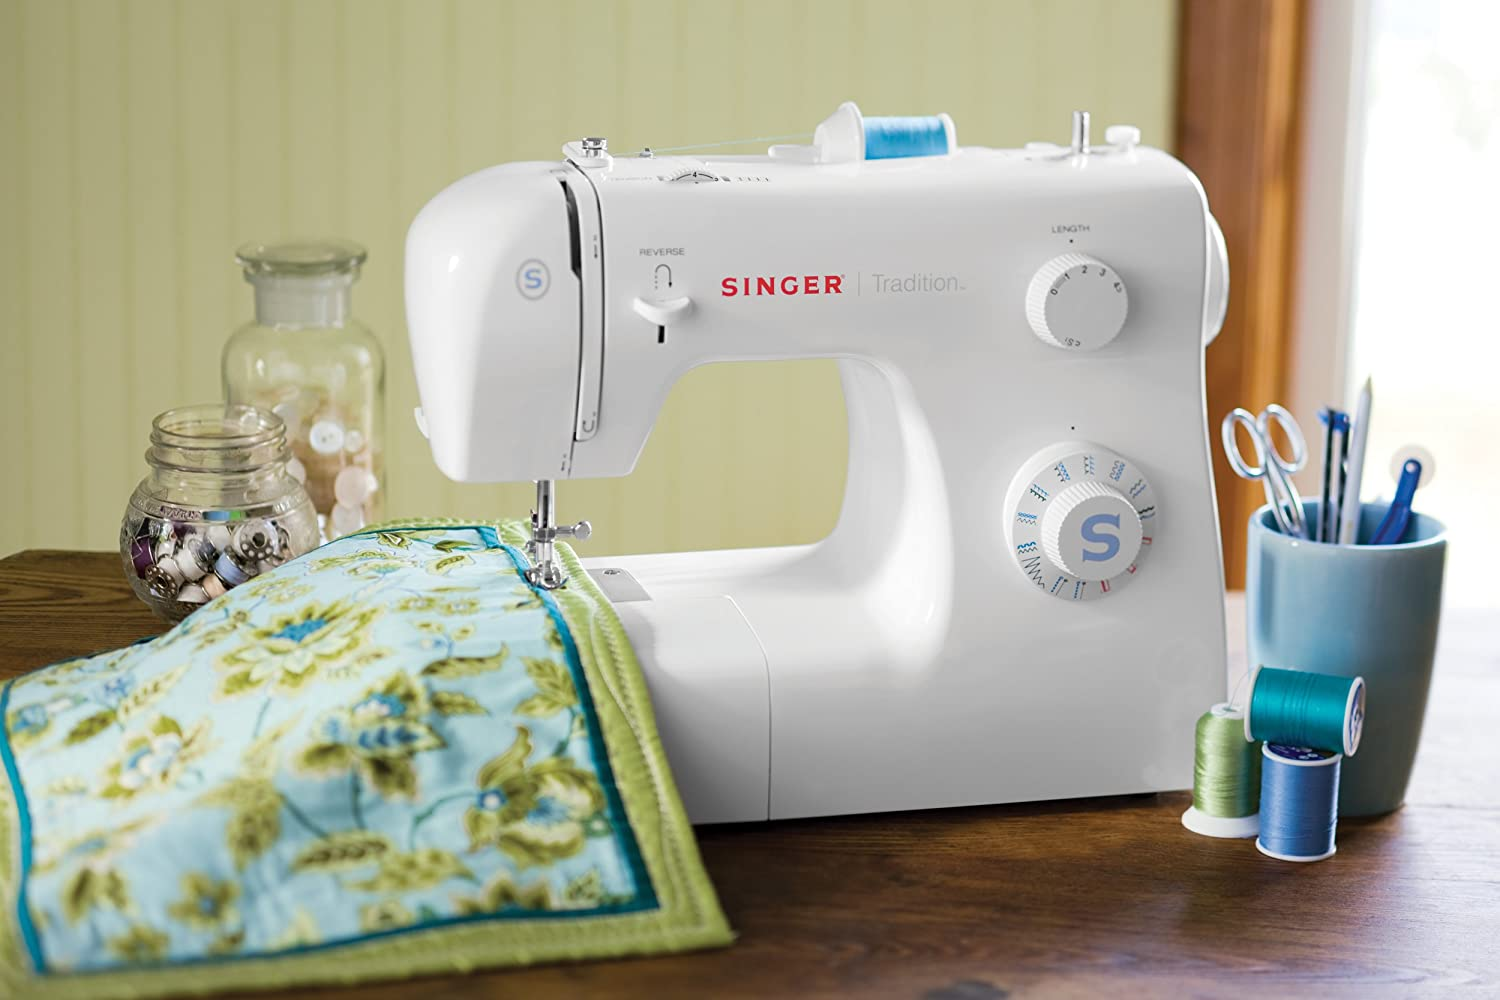 Singer 2259 Sewing Machine Review